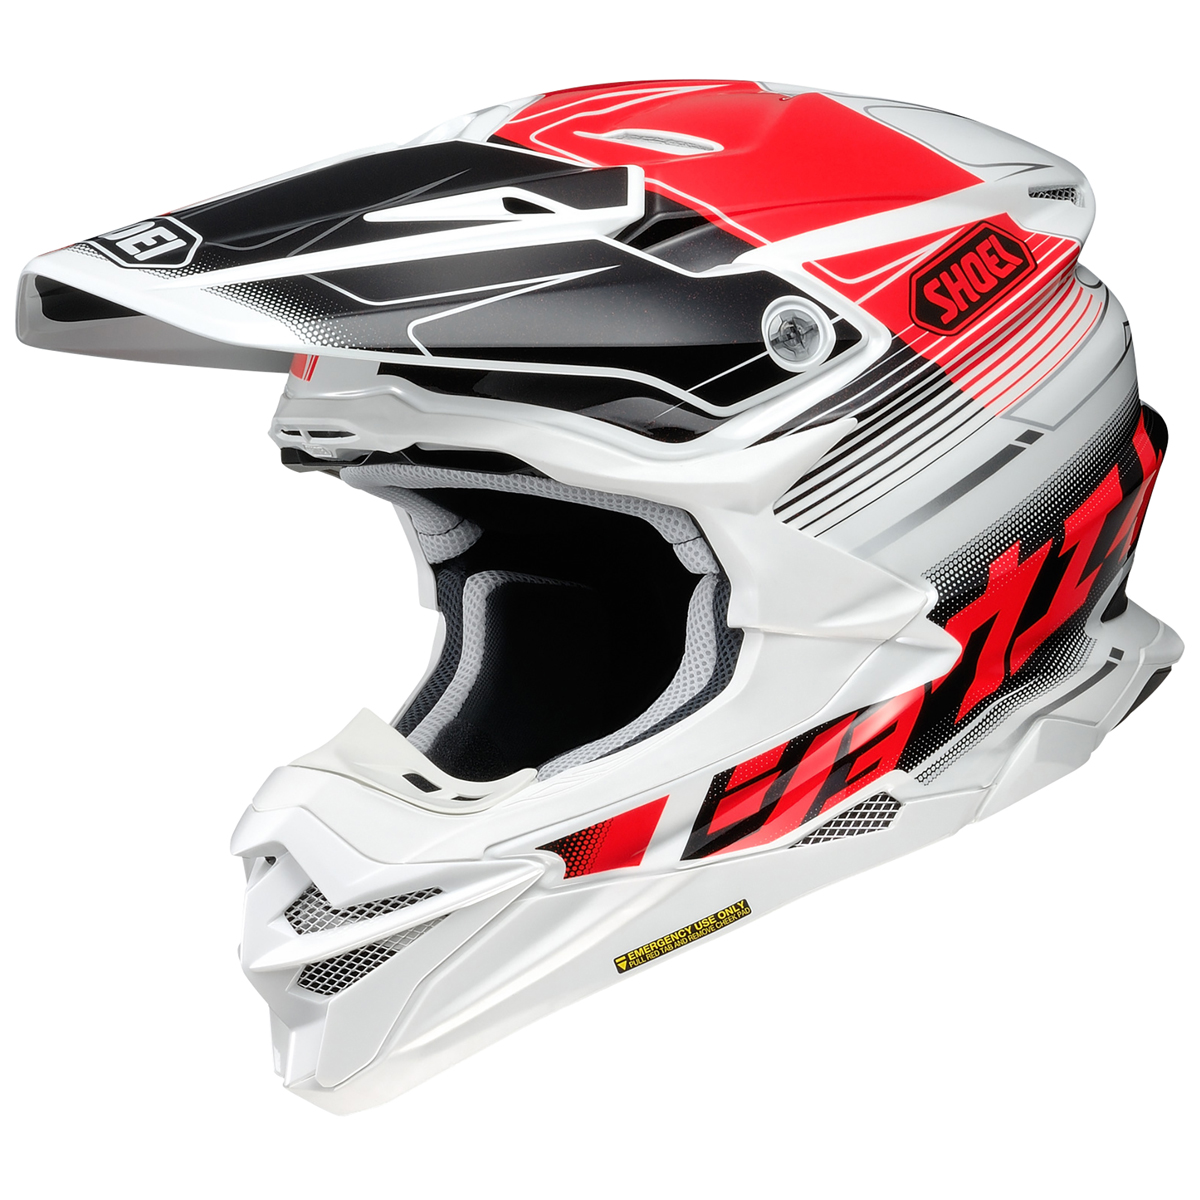 all the best dirtbike helmets currently on the market in 2018. Black Bedroom Furniture Sets. Home Design Ideas